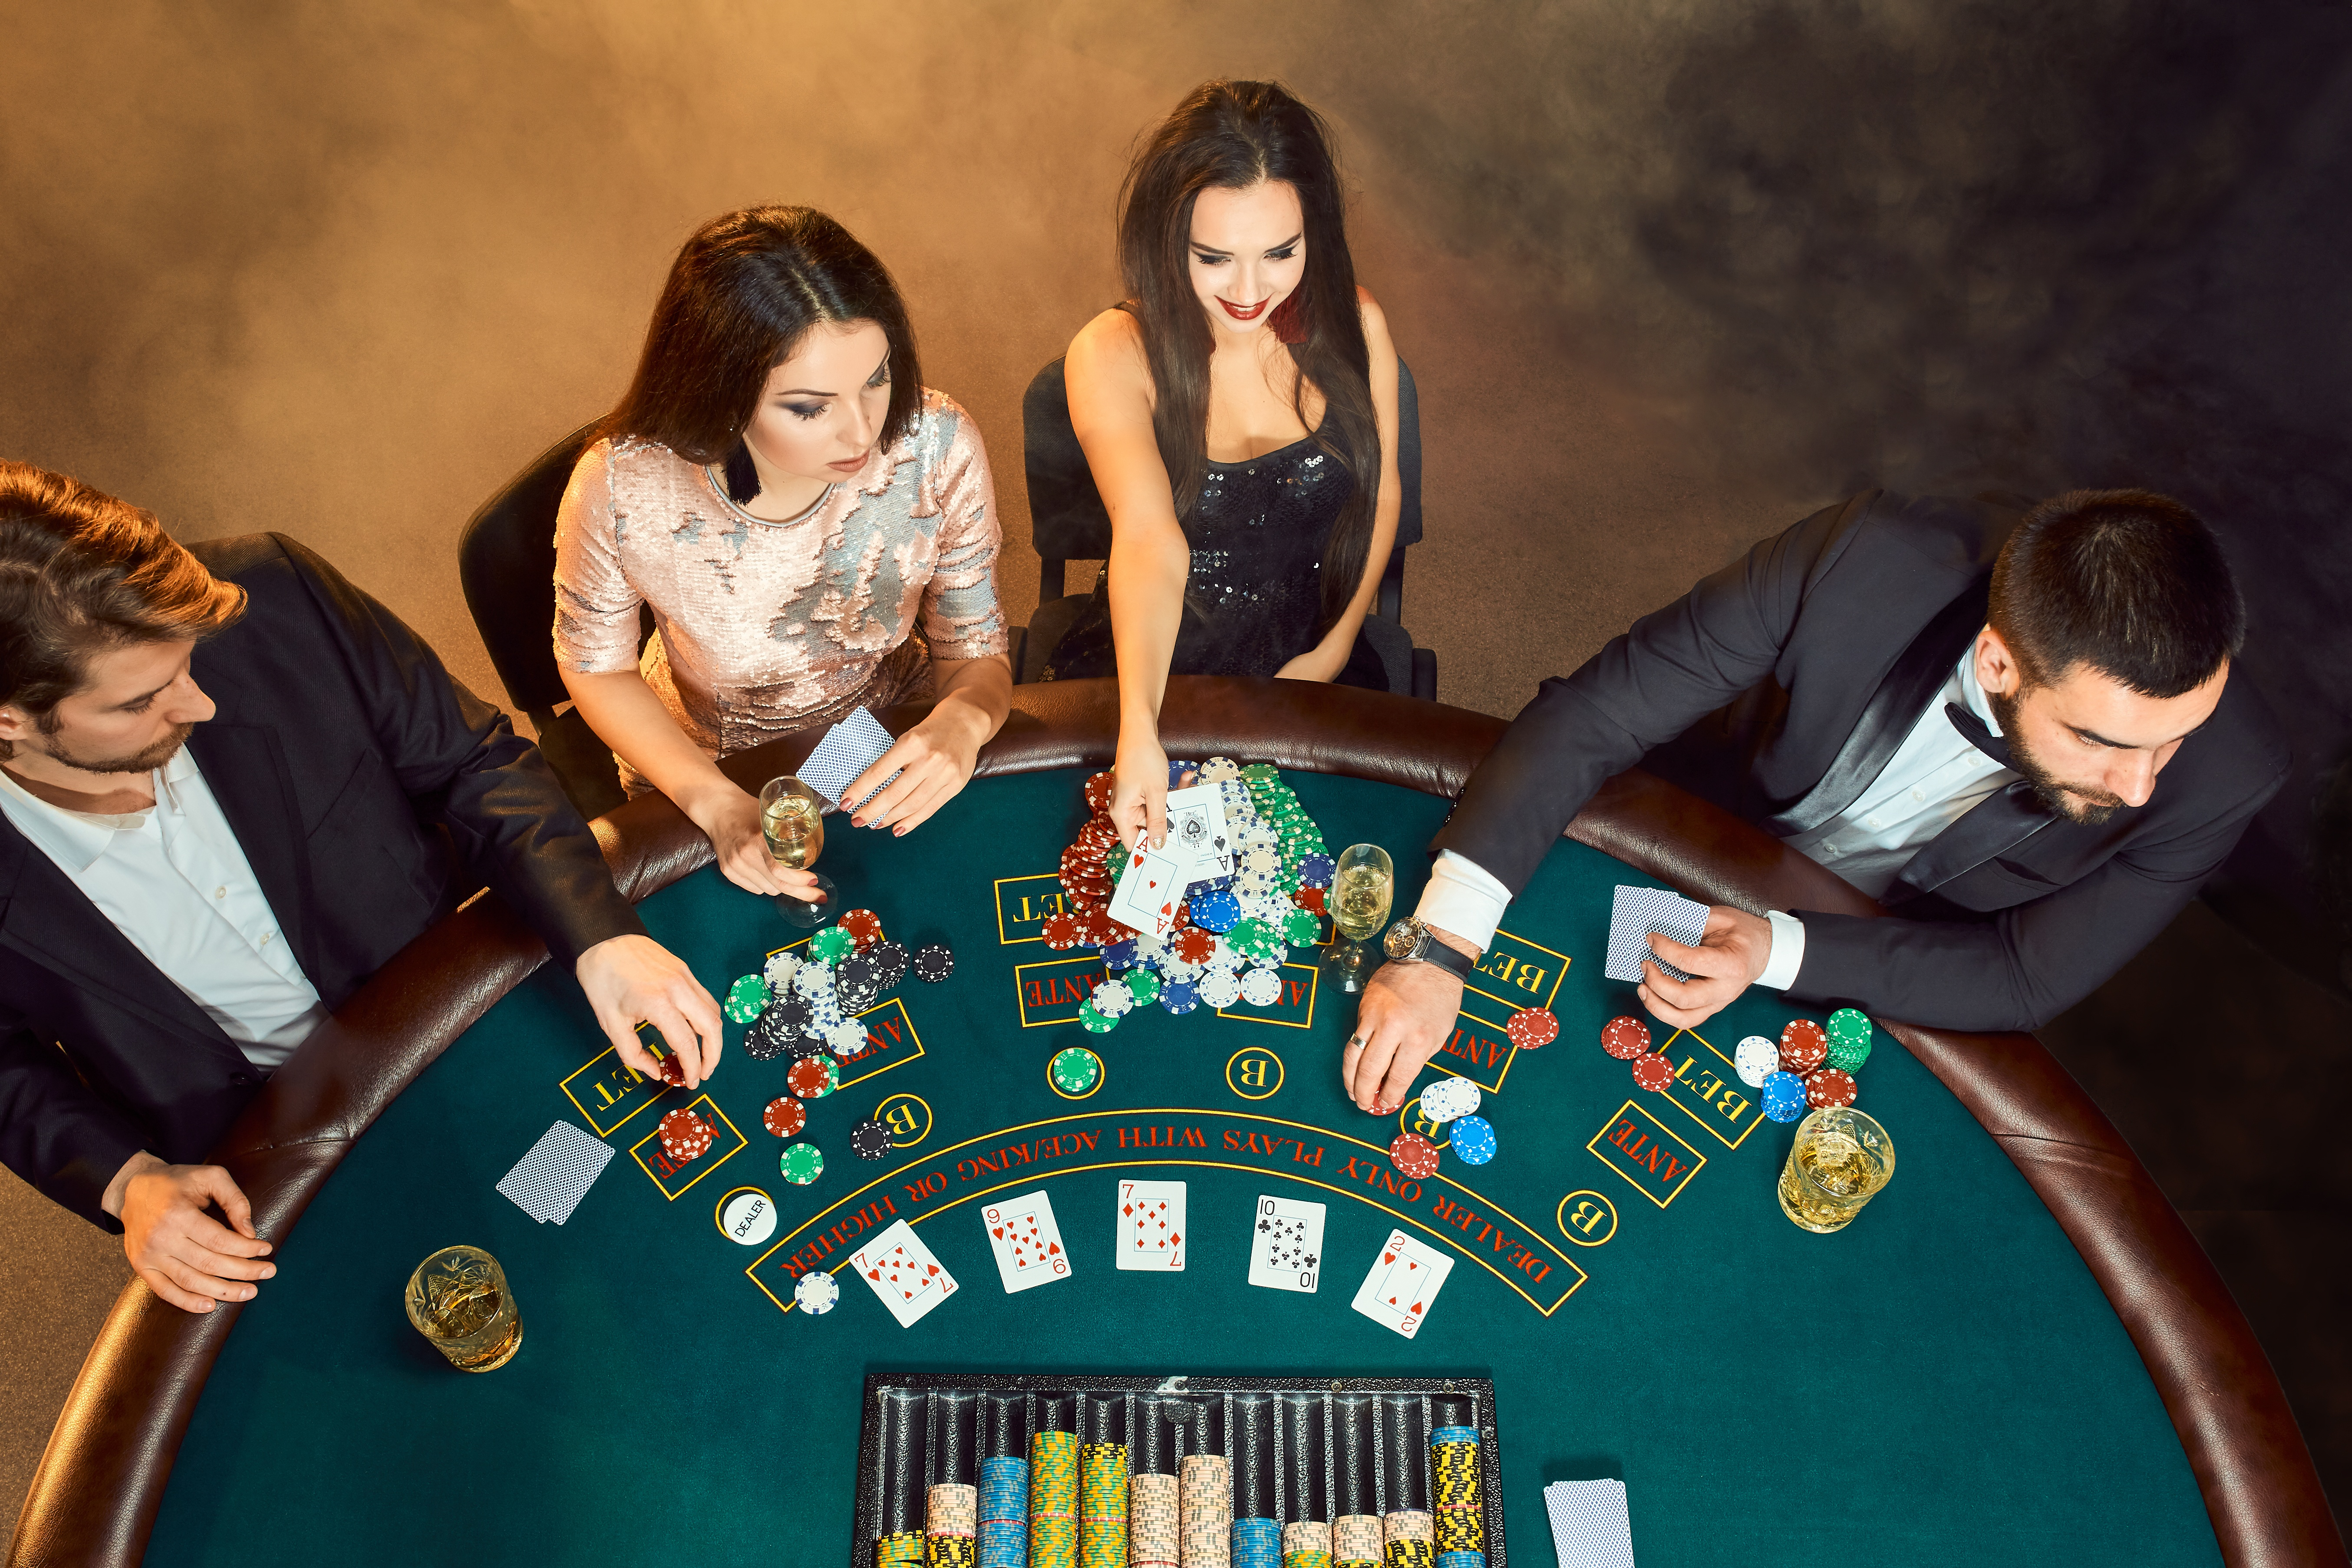 How To Dress For A Night At The Casino